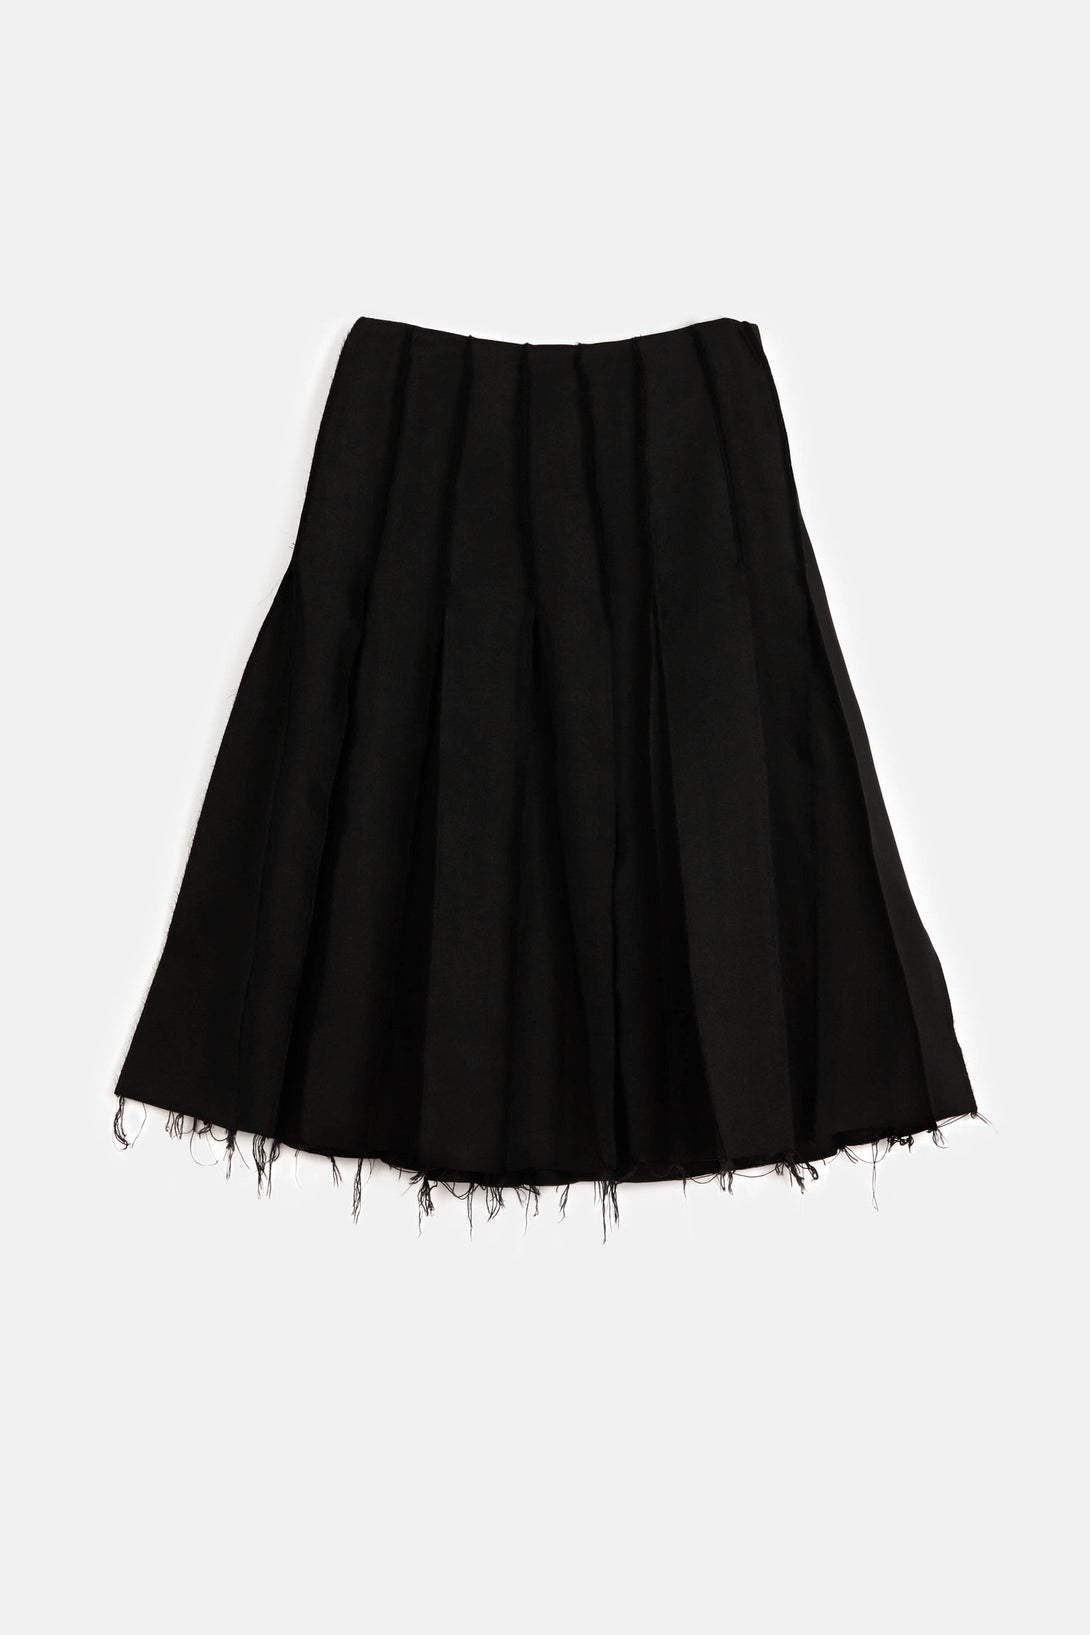 Silk Canvas Reverse Seam Skirt - Black Silk Canvas